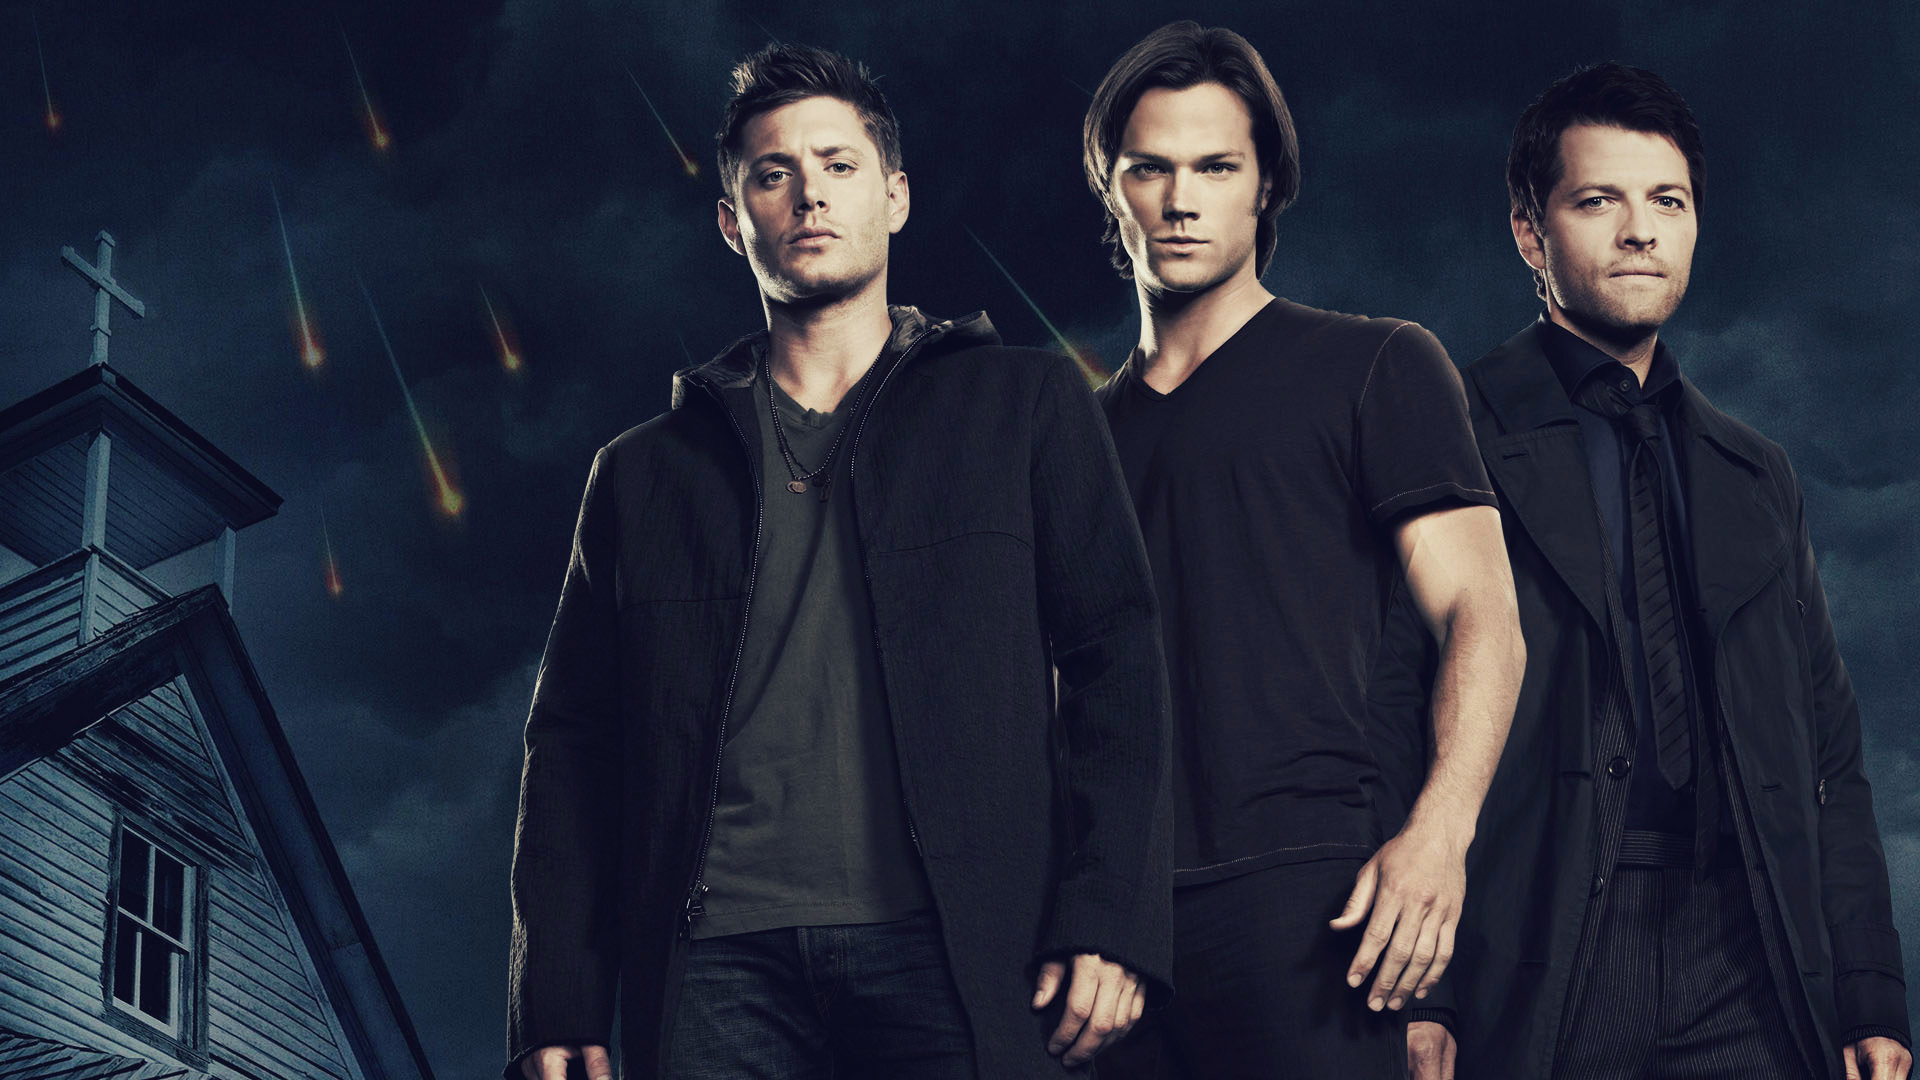 1920x1080 Supernatural Wallpapers High Resolution and Quality Download 1280×1024  Supernatural Wallpaper (39 Wallpapers)